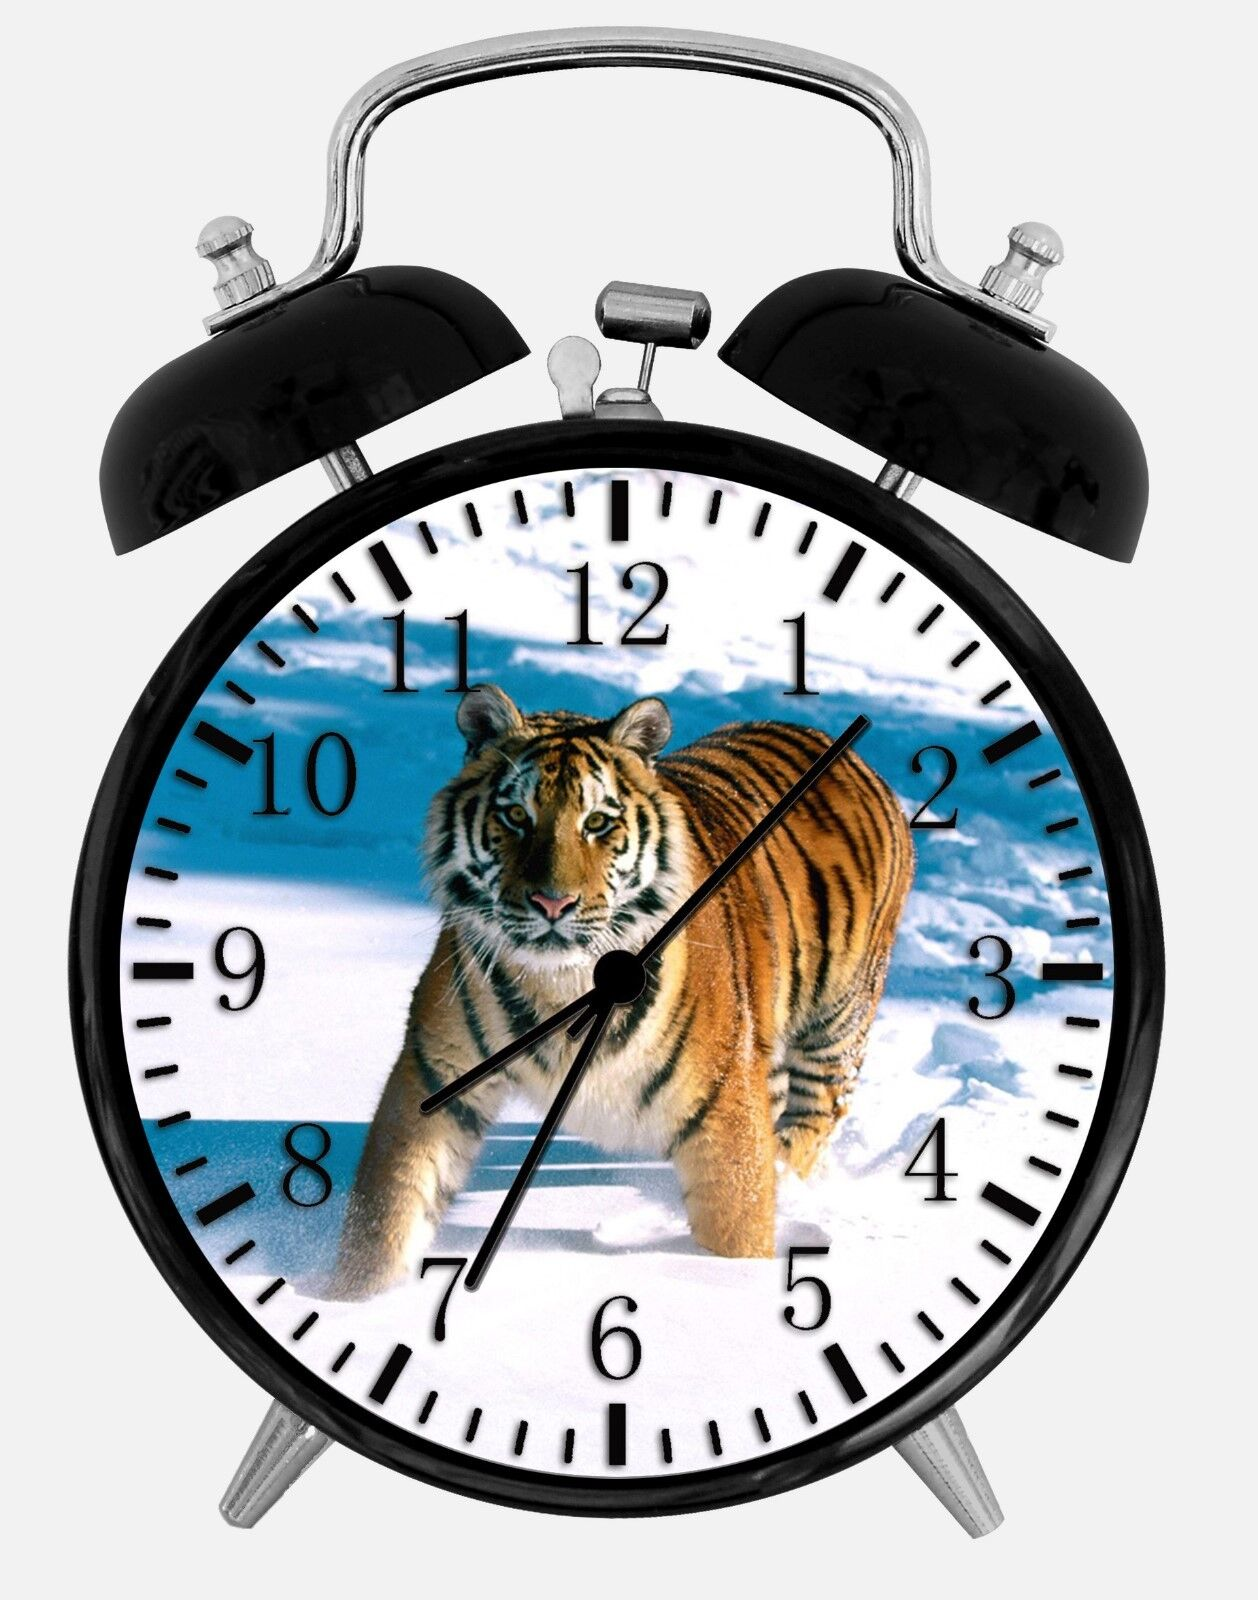 "Tiger in Snow Alarm Desk Clock 3.75"" Room Office Decor W12 Will Be a Nice Gift"